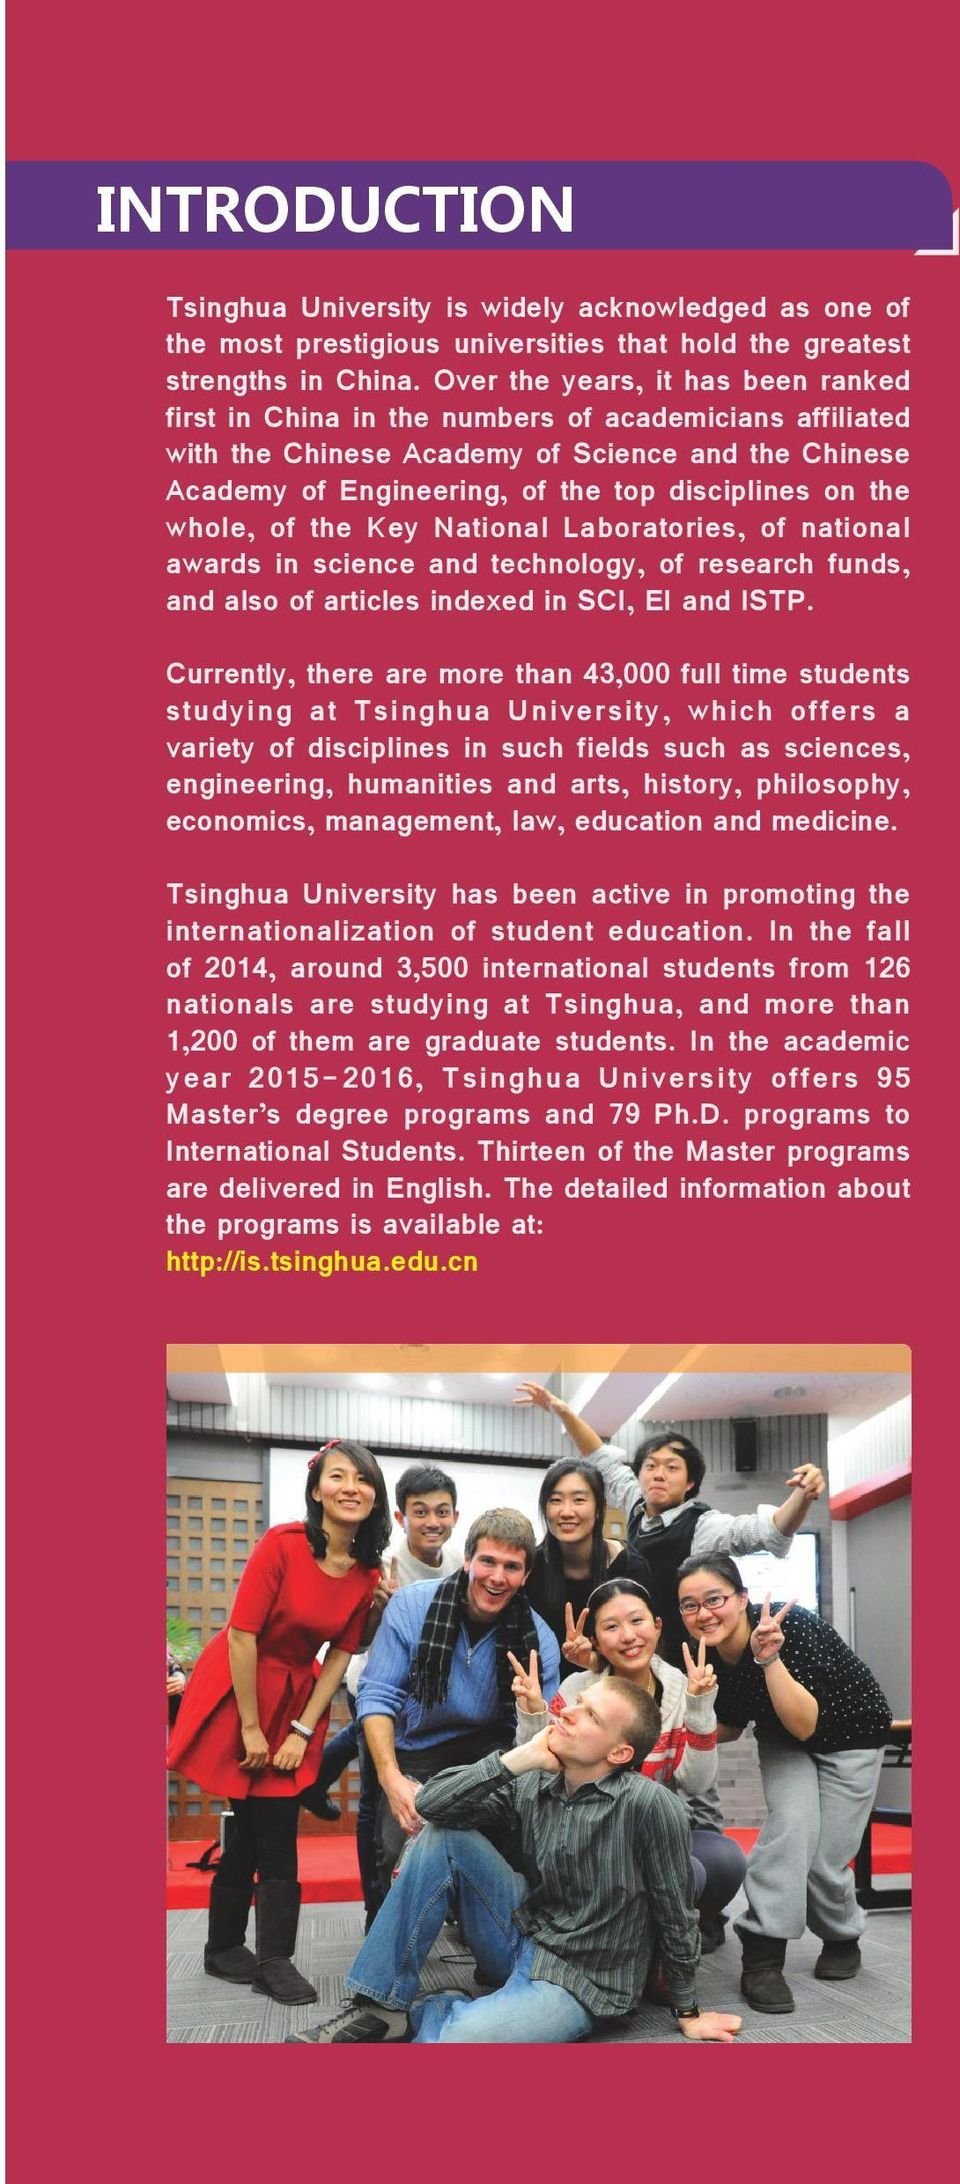 html QUALIFICATION Tsinghua University of Applicants Currently, there are more than 43,000 full time students studying at Tsinghua University, which offers a variety of disciplines in such fields